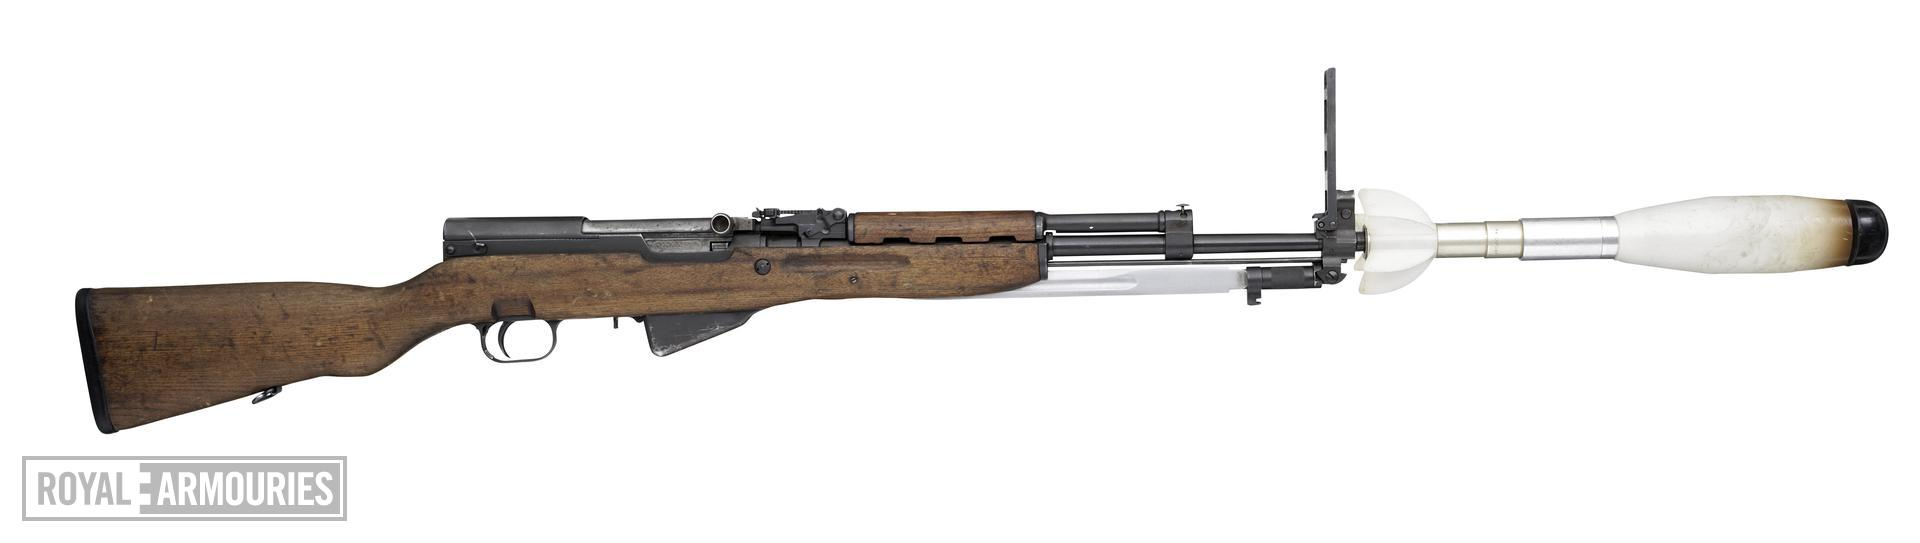 Centrefire self-loading rifle - Model 59/66 (Simonov SKS)